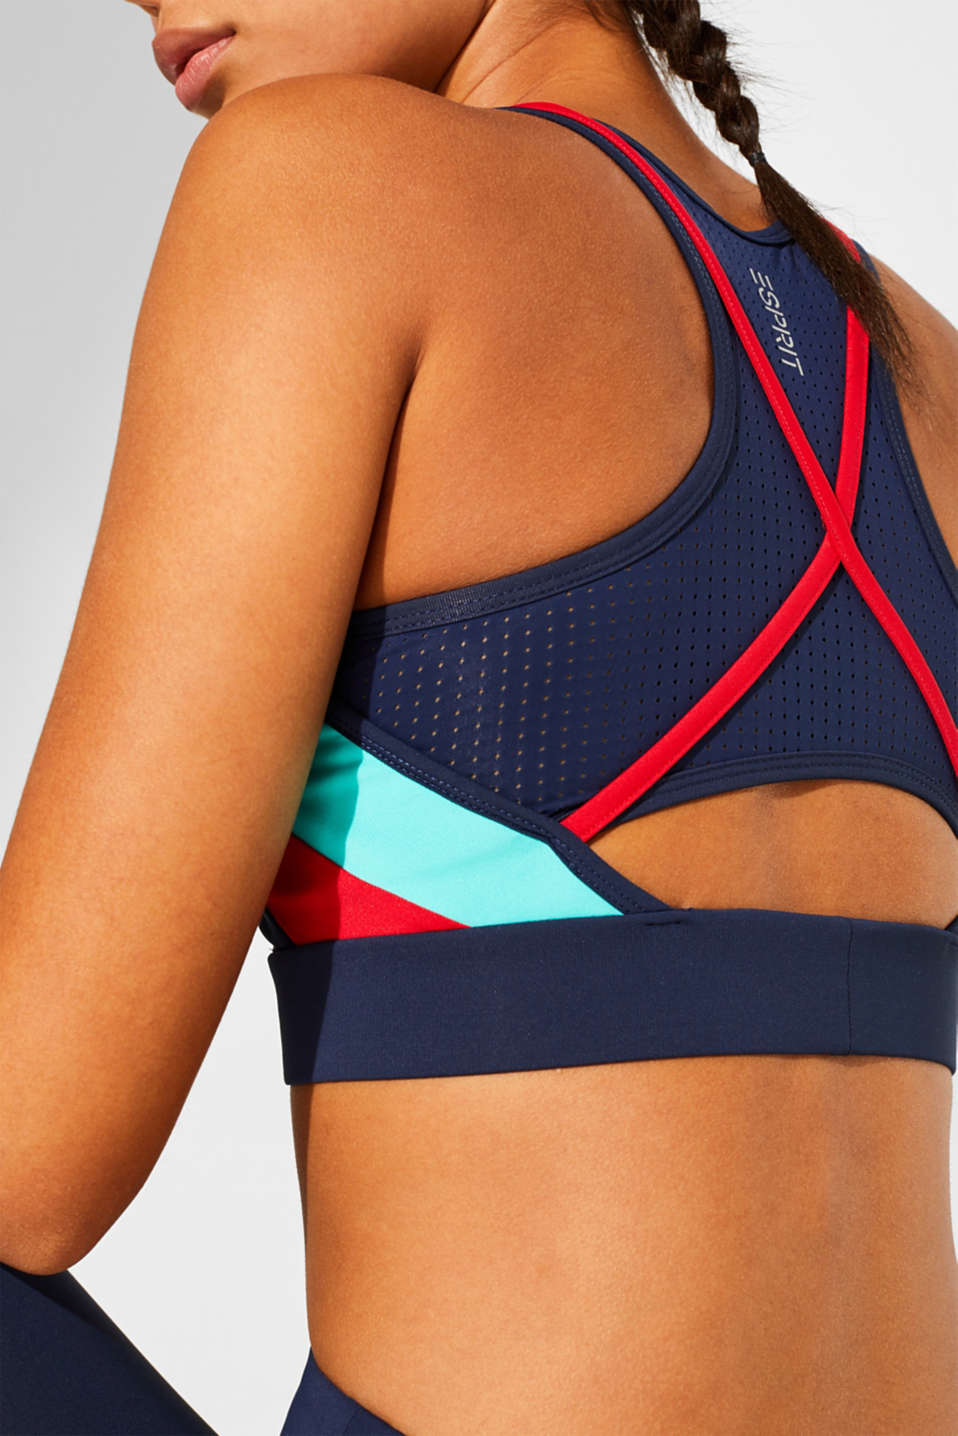 Padded sports crop top with mesh details, E-DRY, NAVY, detail image number 3